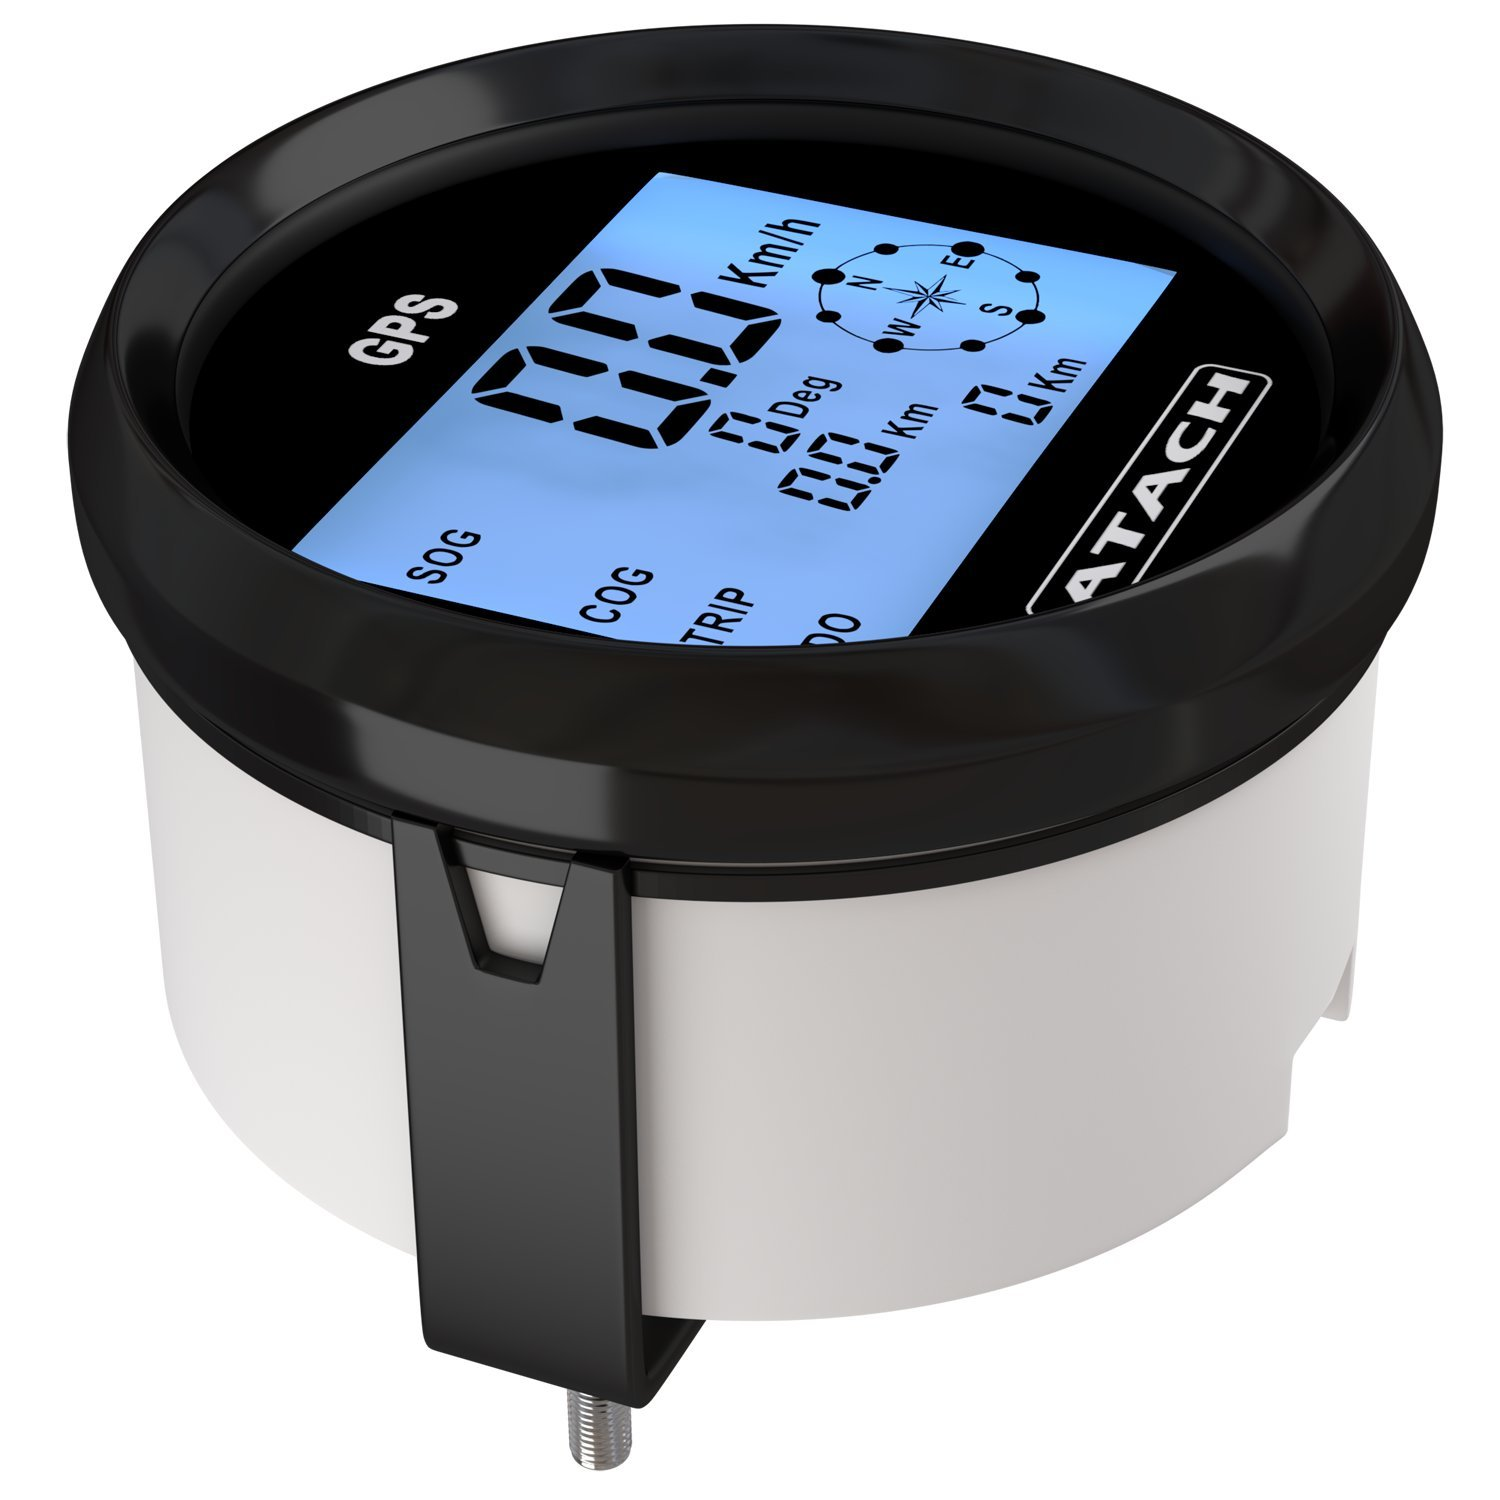 AndyTach 3-3/8'' ATACH DIGITAL GPS speedometer with high speed recall (BLACK/BLACK BEZEL) by AndyTach (Image #3)